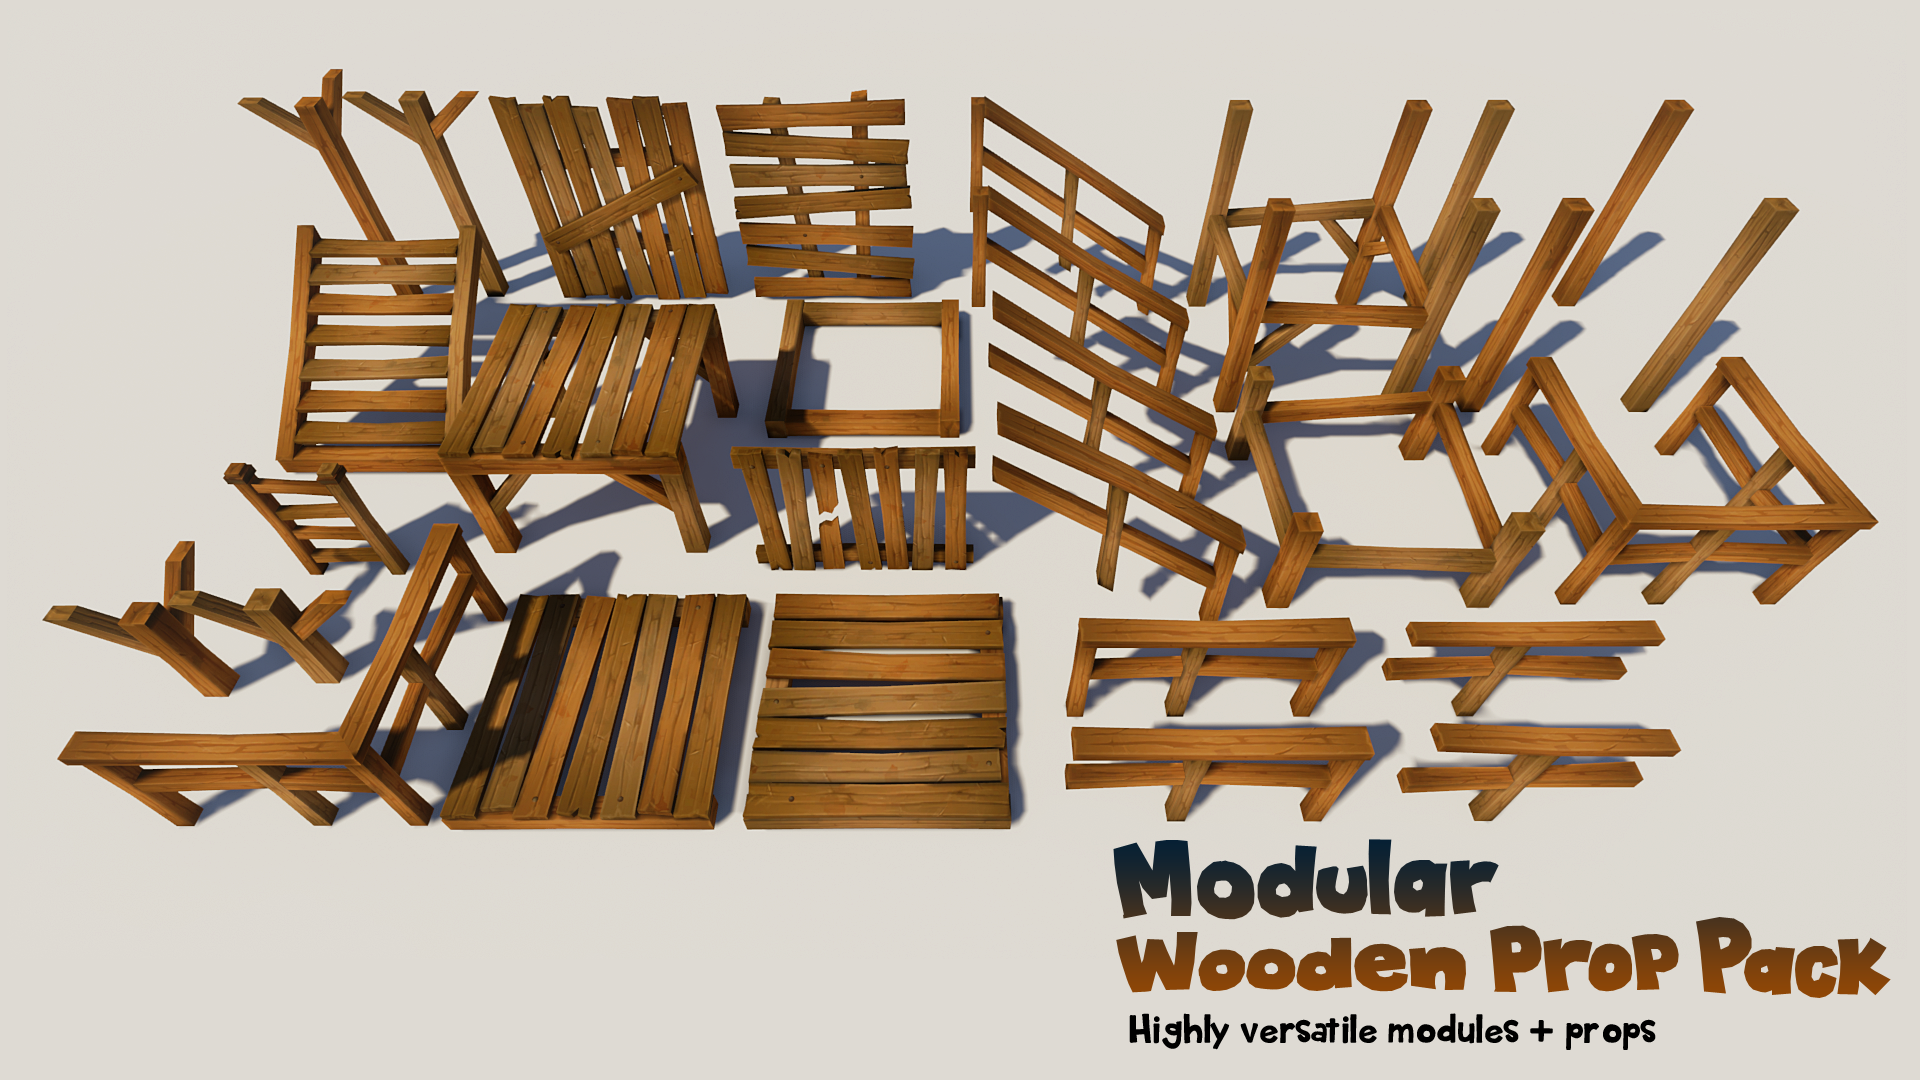 Modular Wooden Prop Pack by Ginkgostory in props - UE4 Marketplace